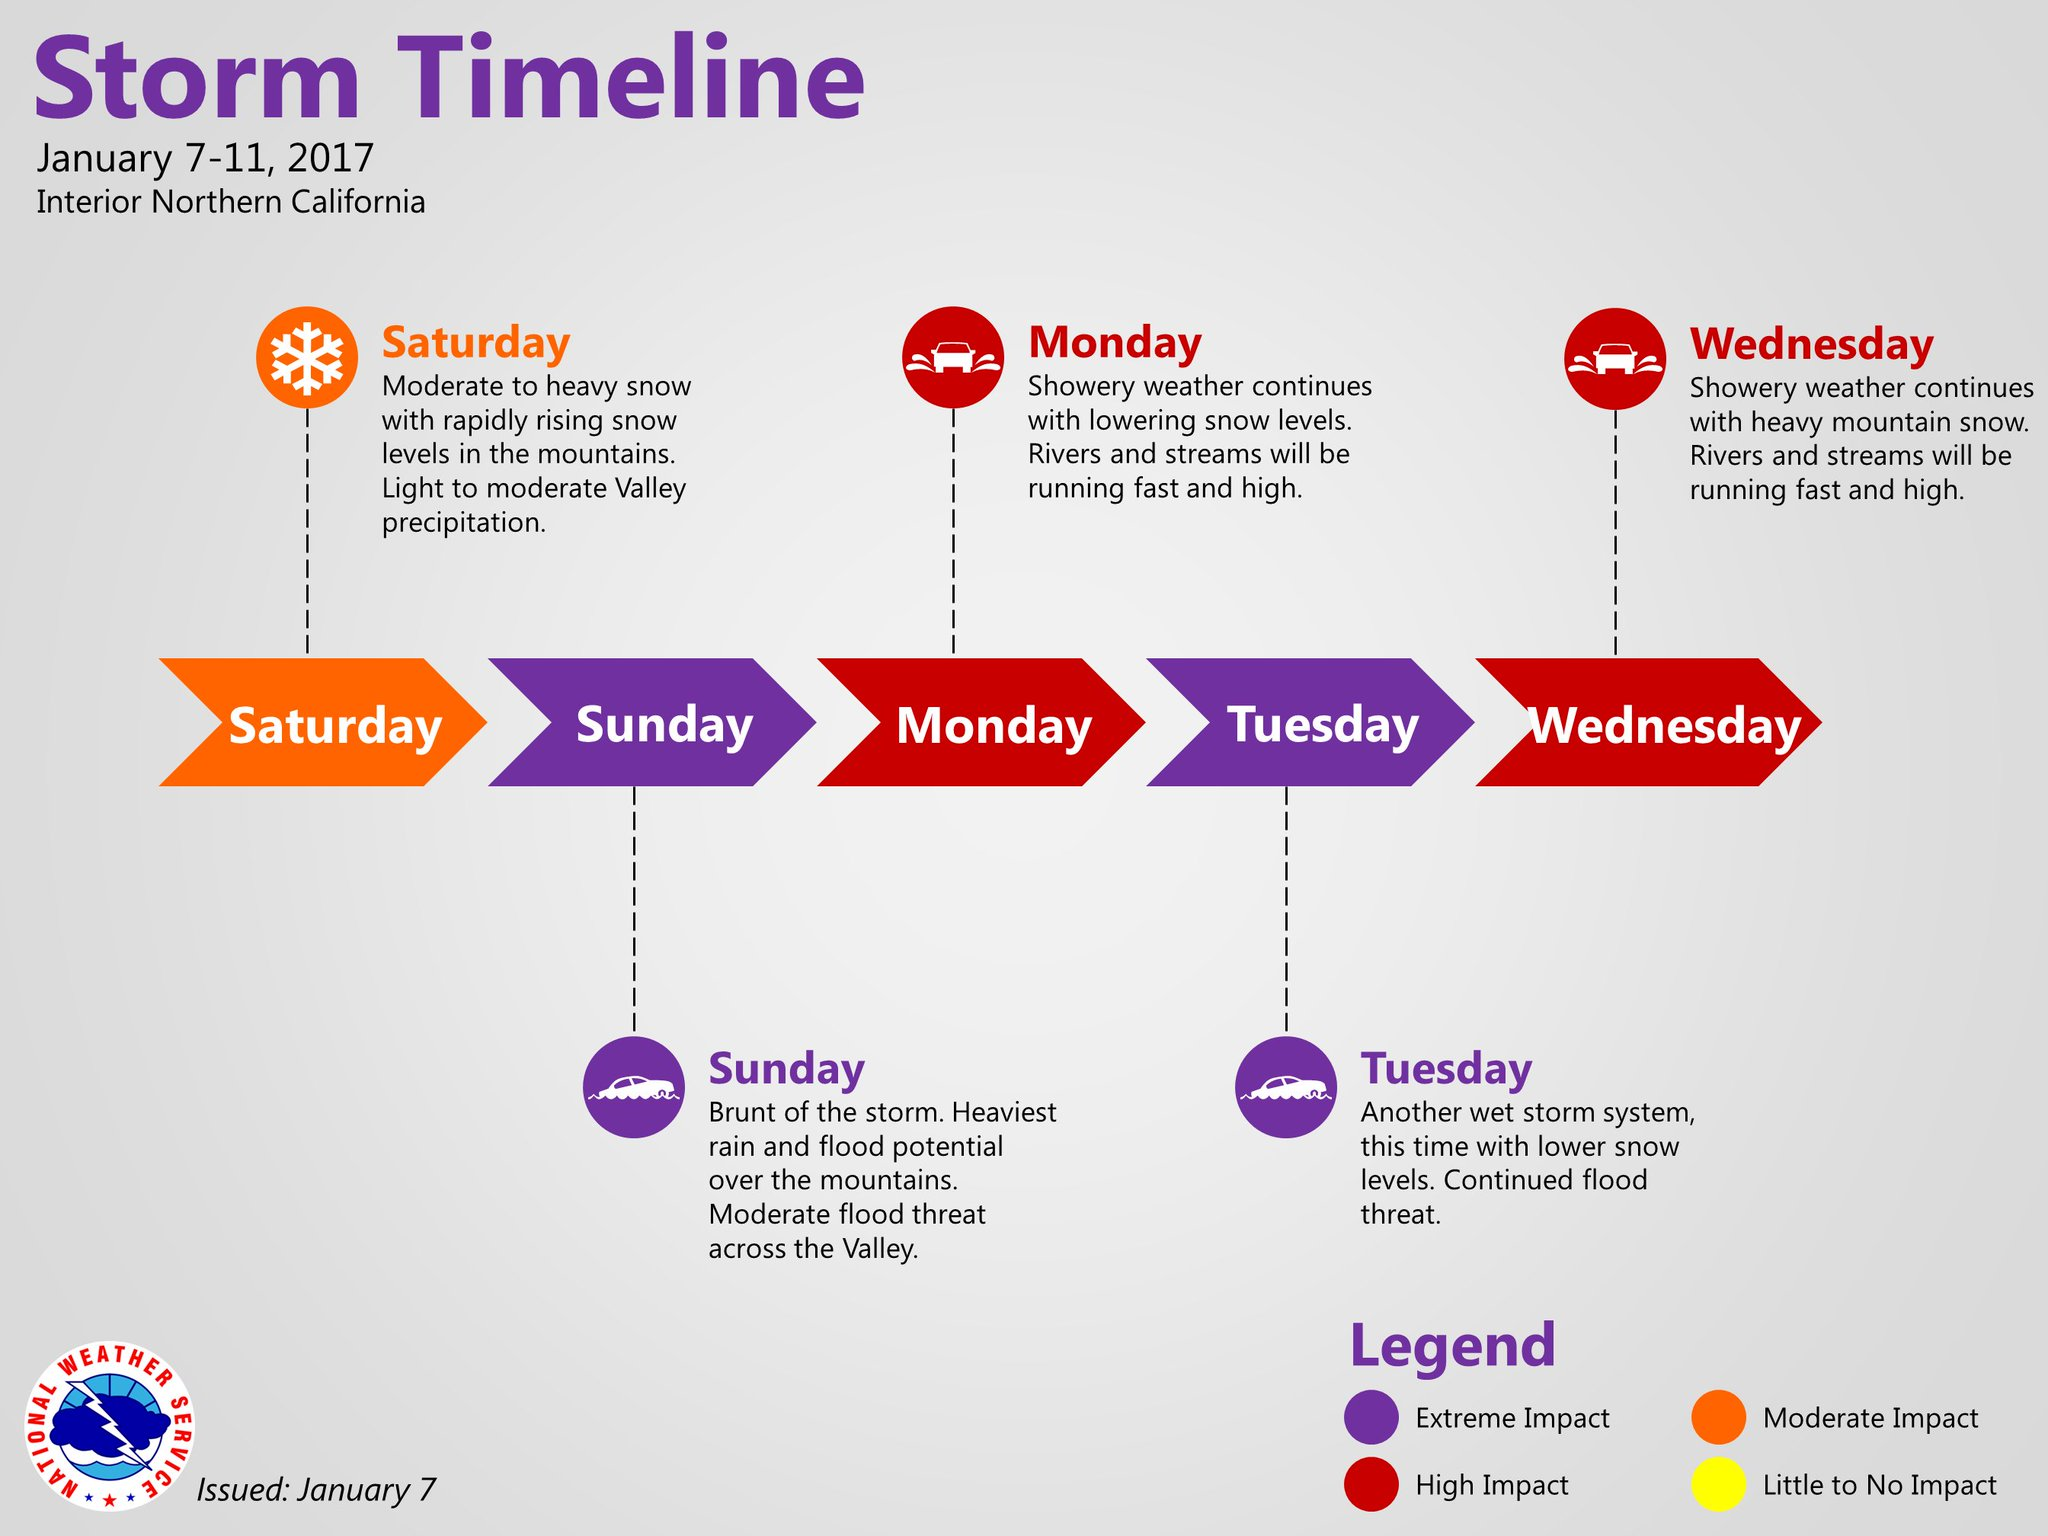 It's time! Extended pattern of wet weather begins today into next week. Here's your storm timeline. #cawx #CAstorm https://t.co/9NWg5KDued